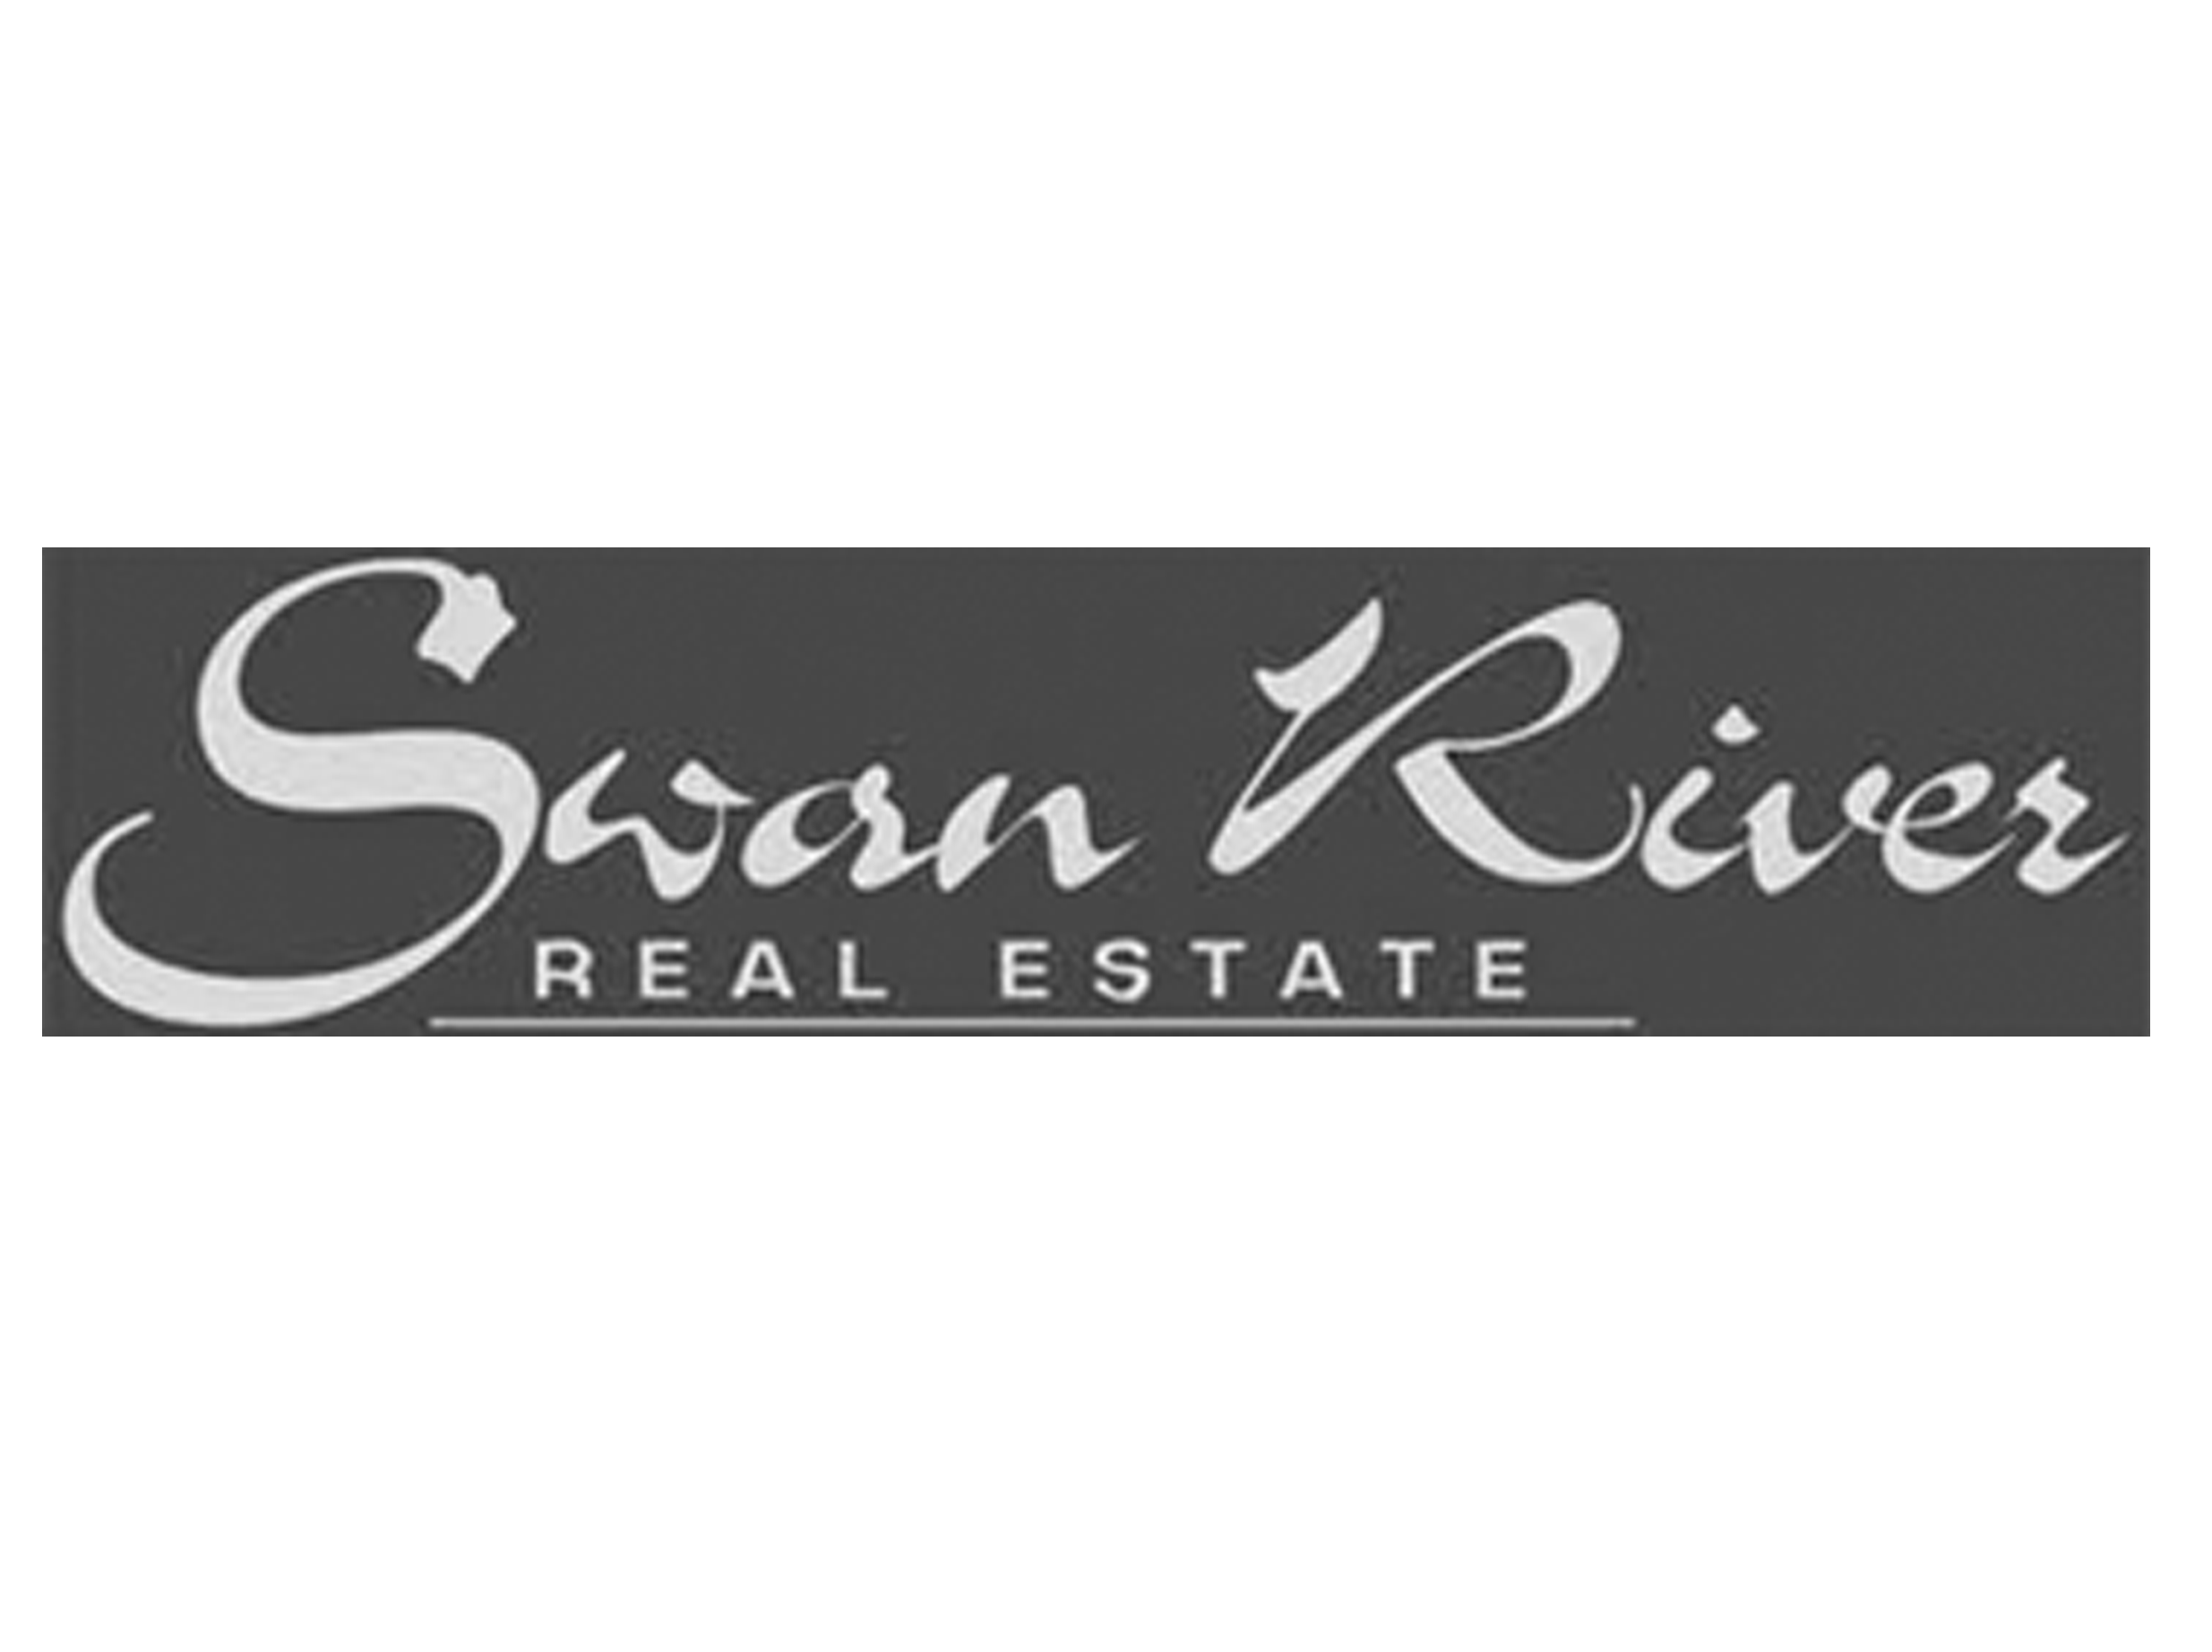 Swan River Real Estate